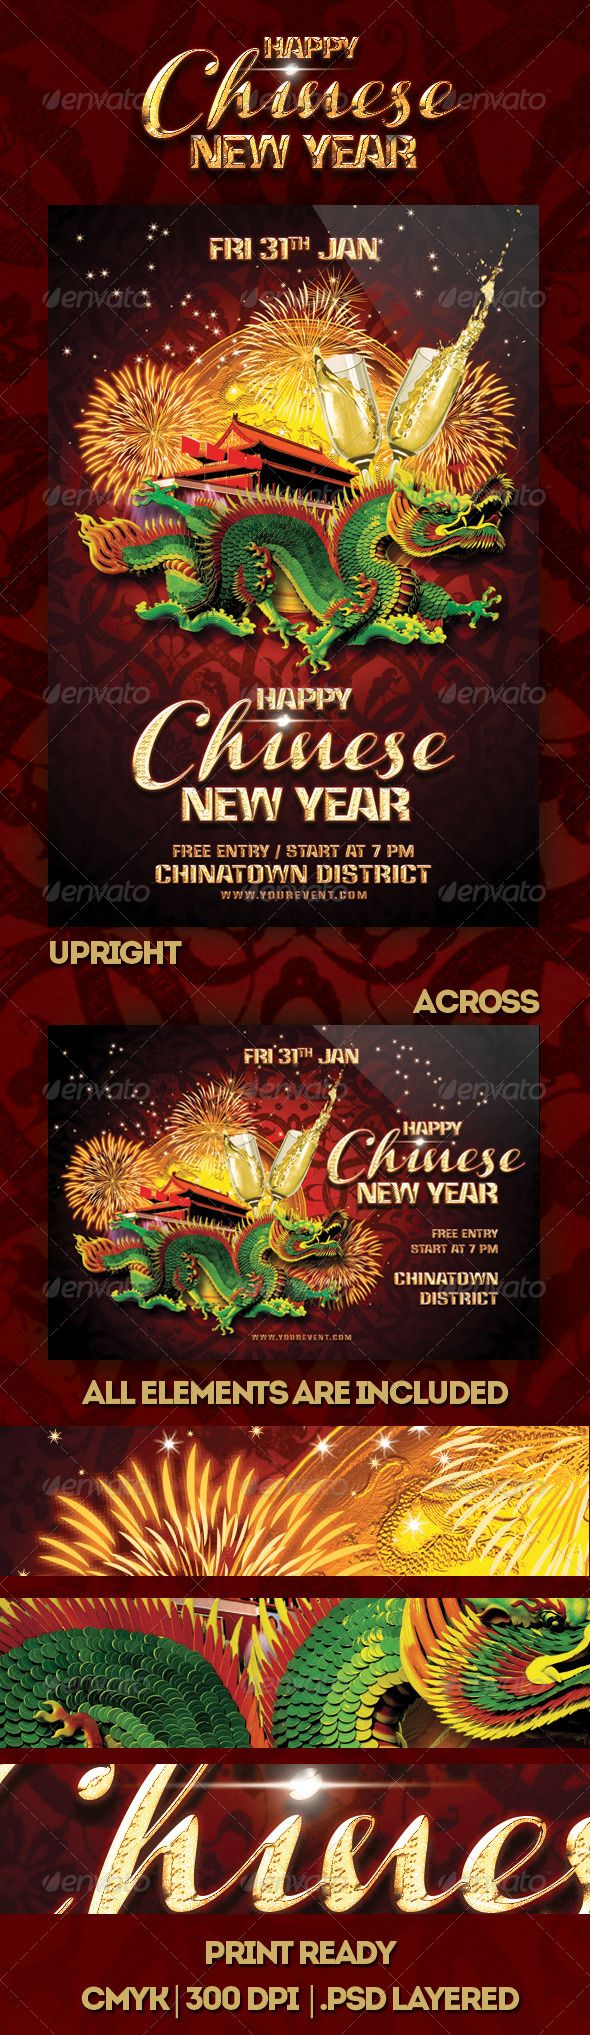 happy chinese new year flyer flyers chinese new years and happy happy chinese new year flyer a celebration of new year modern and dazzling flyer design template for invitation to chinese new year event